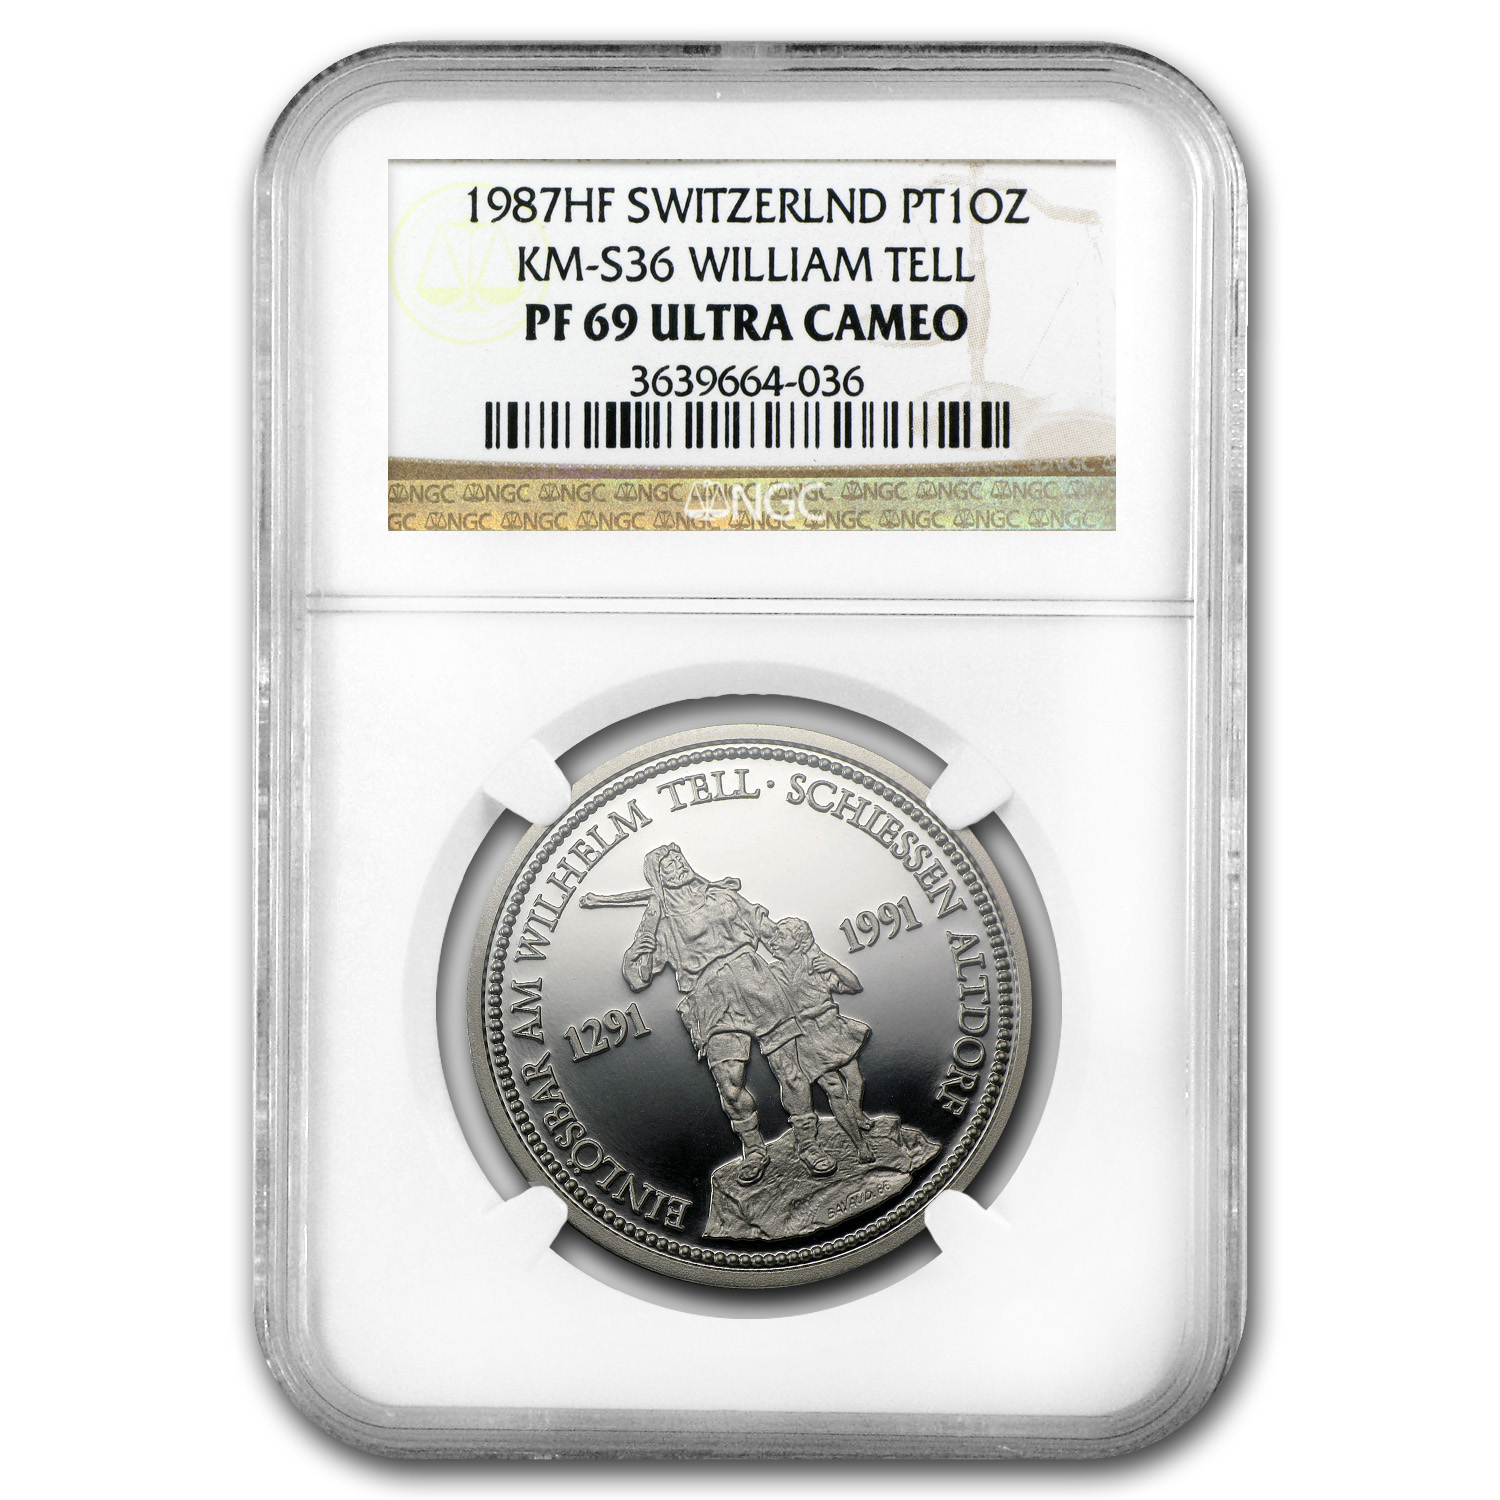 1987 1 oz Proof Swiss Platinum William Tell PF-69 NGC